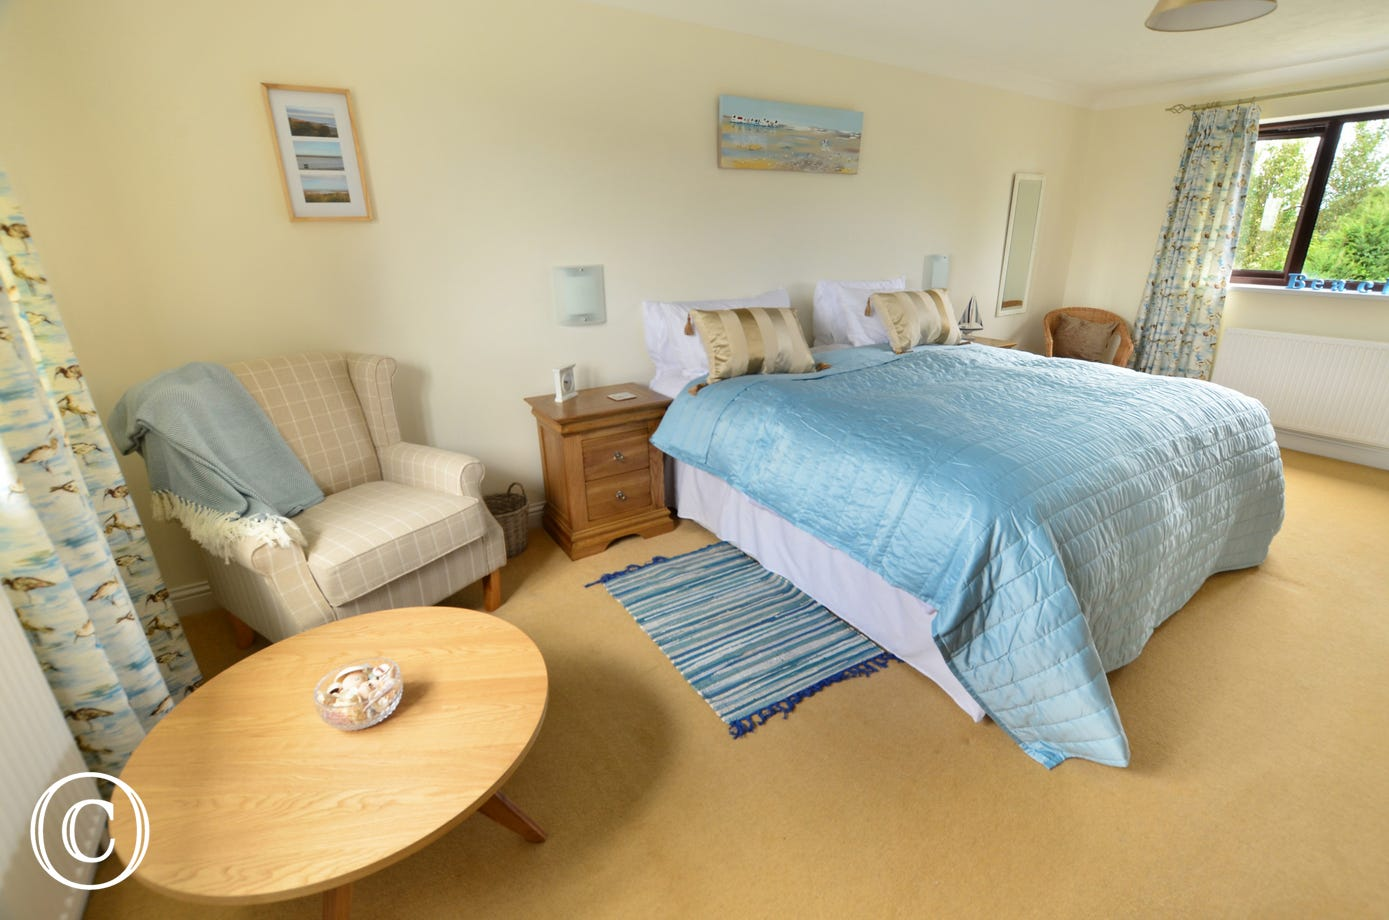 Double aspect bedroom with comfortable chairs and a table